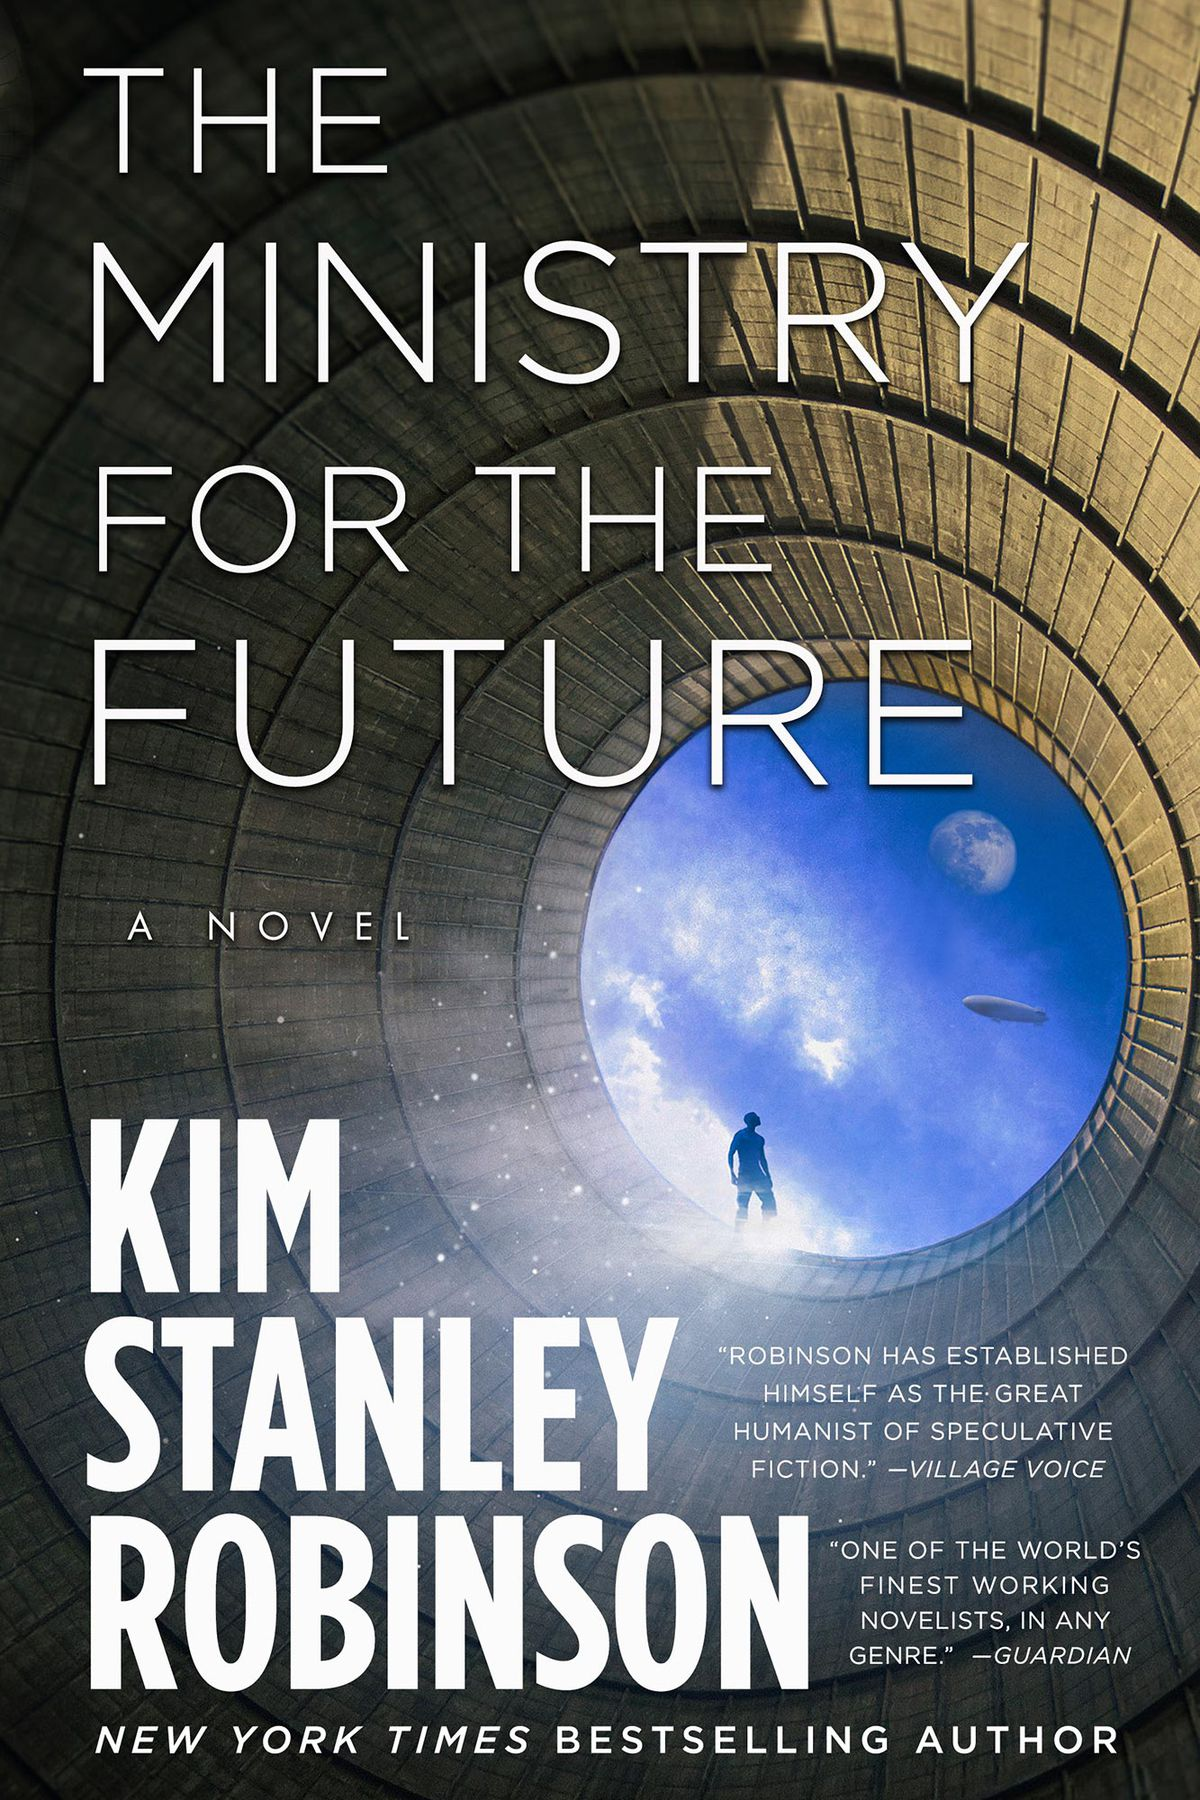 The cover of Kim Stanley Robinson's Ministry For the Future